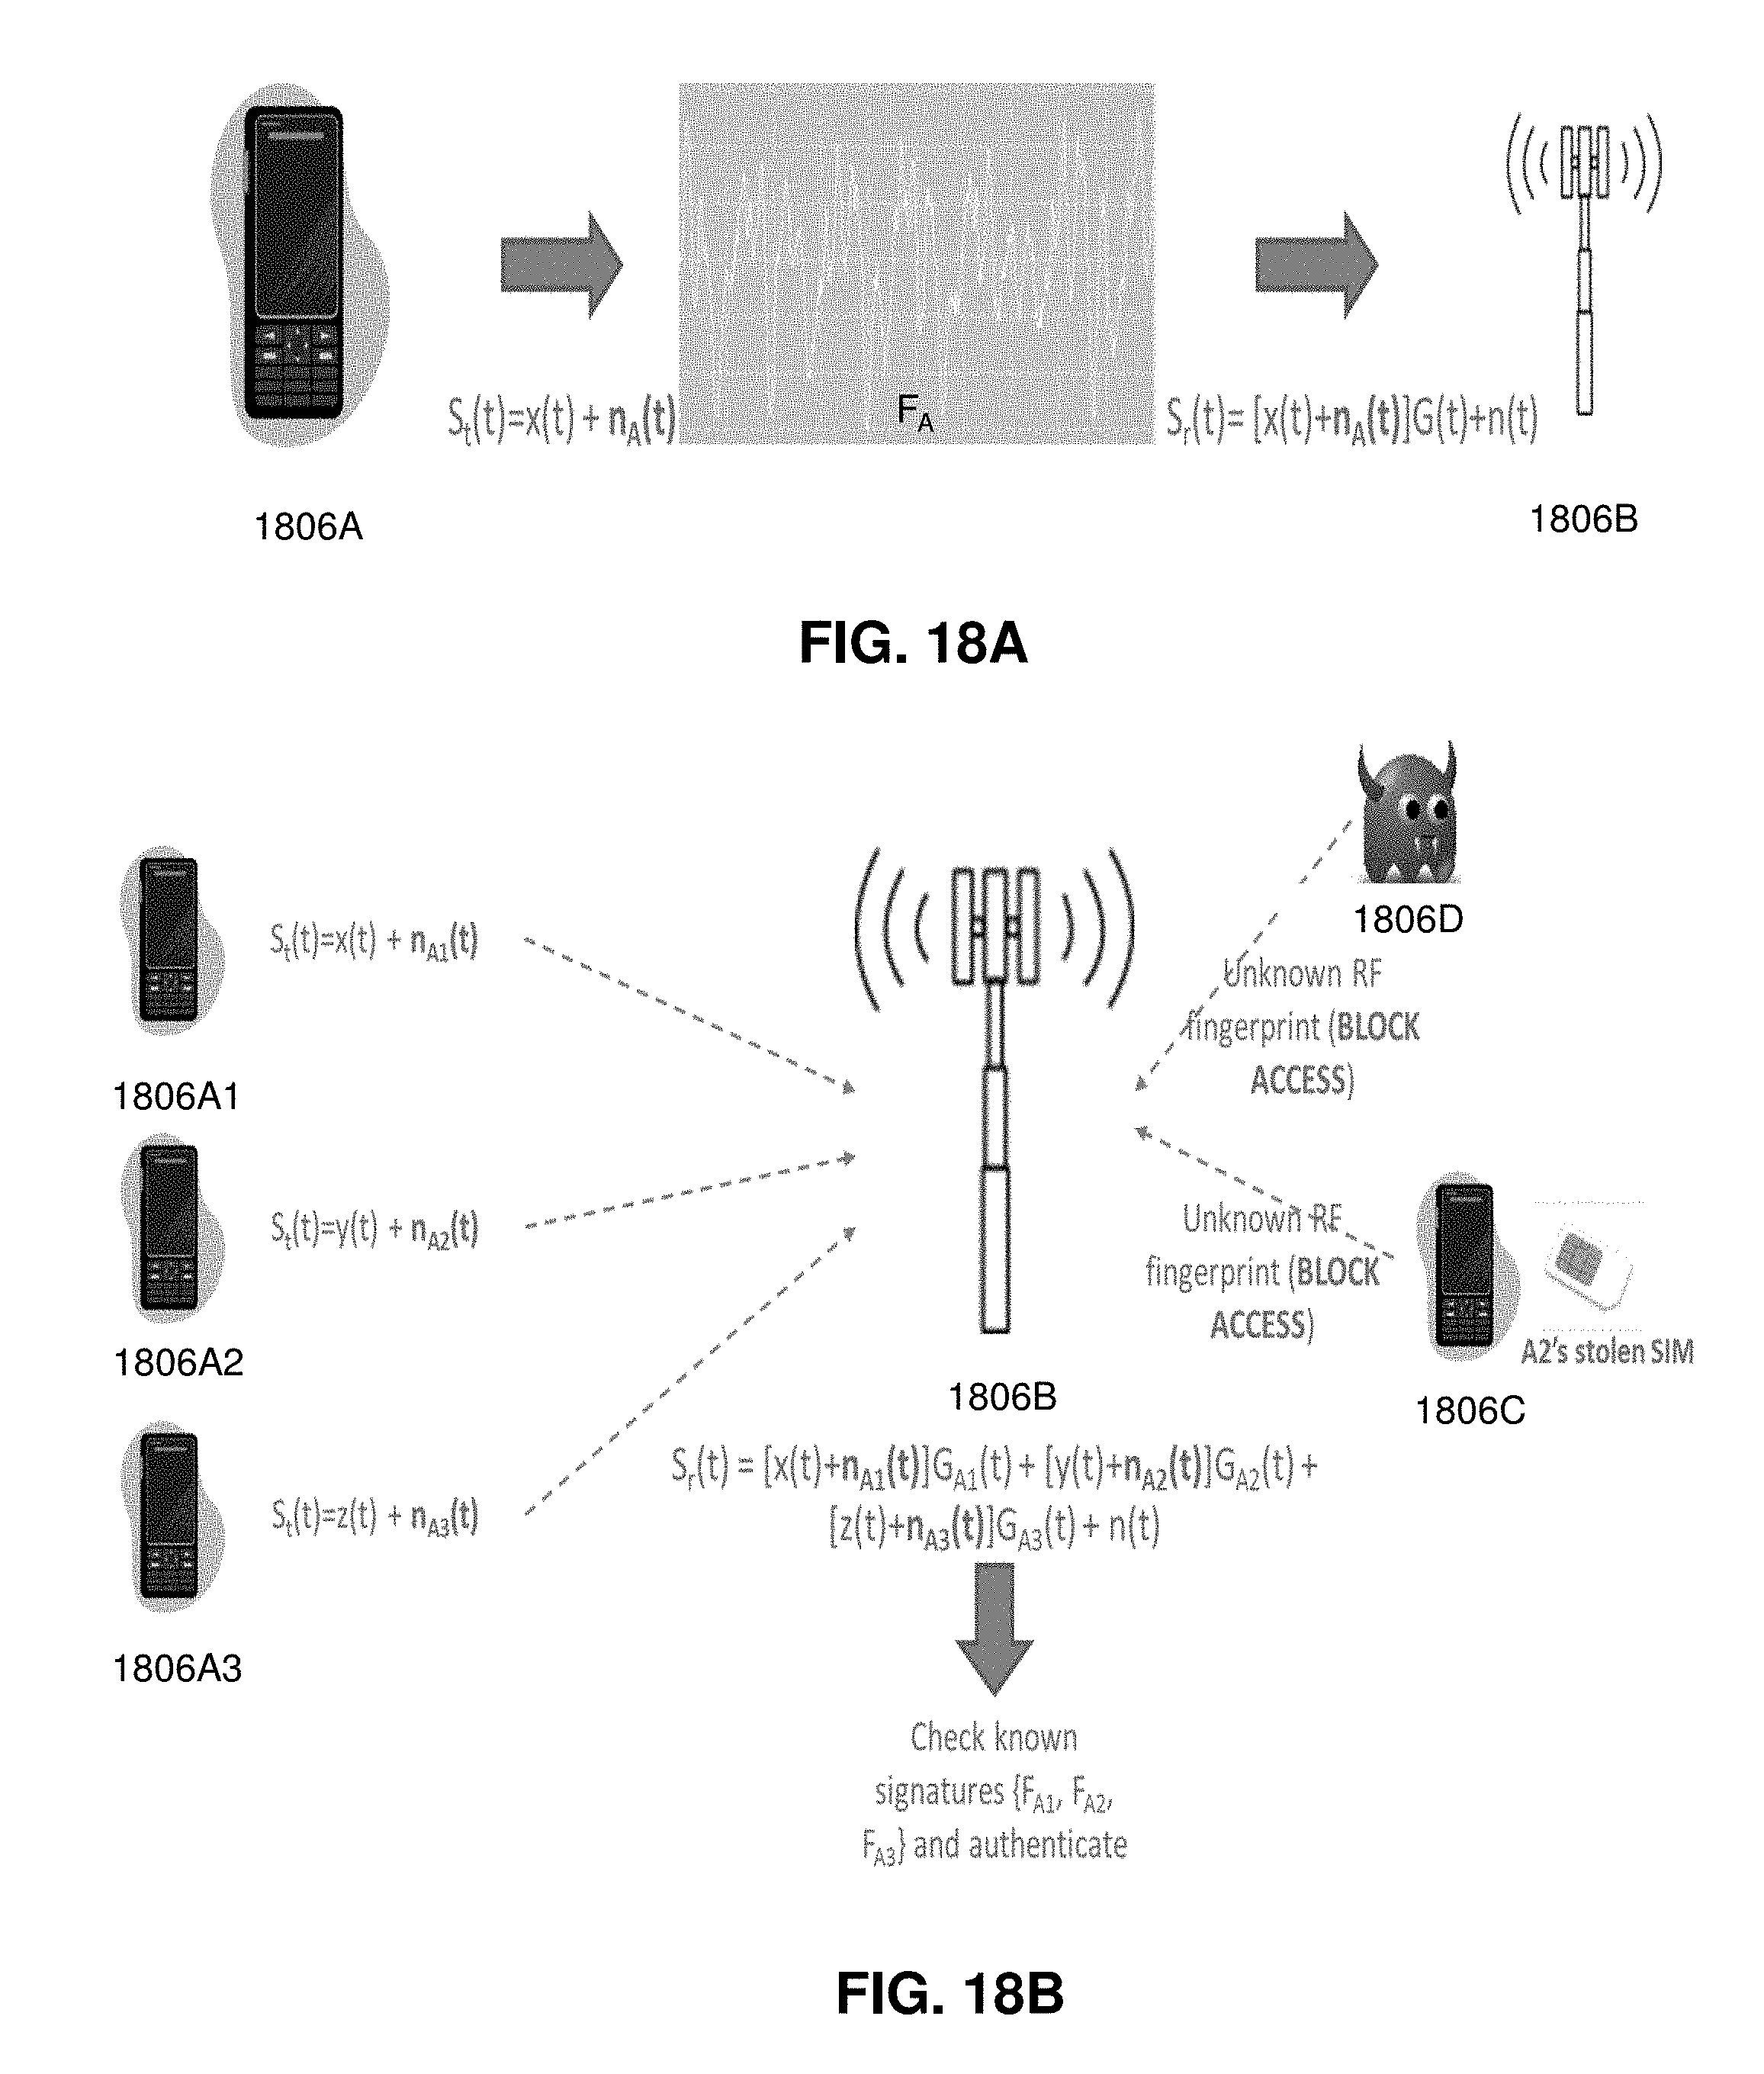 US9913139B2 - Signal fingerprinting for authentication of communicating  devices - Google Patents